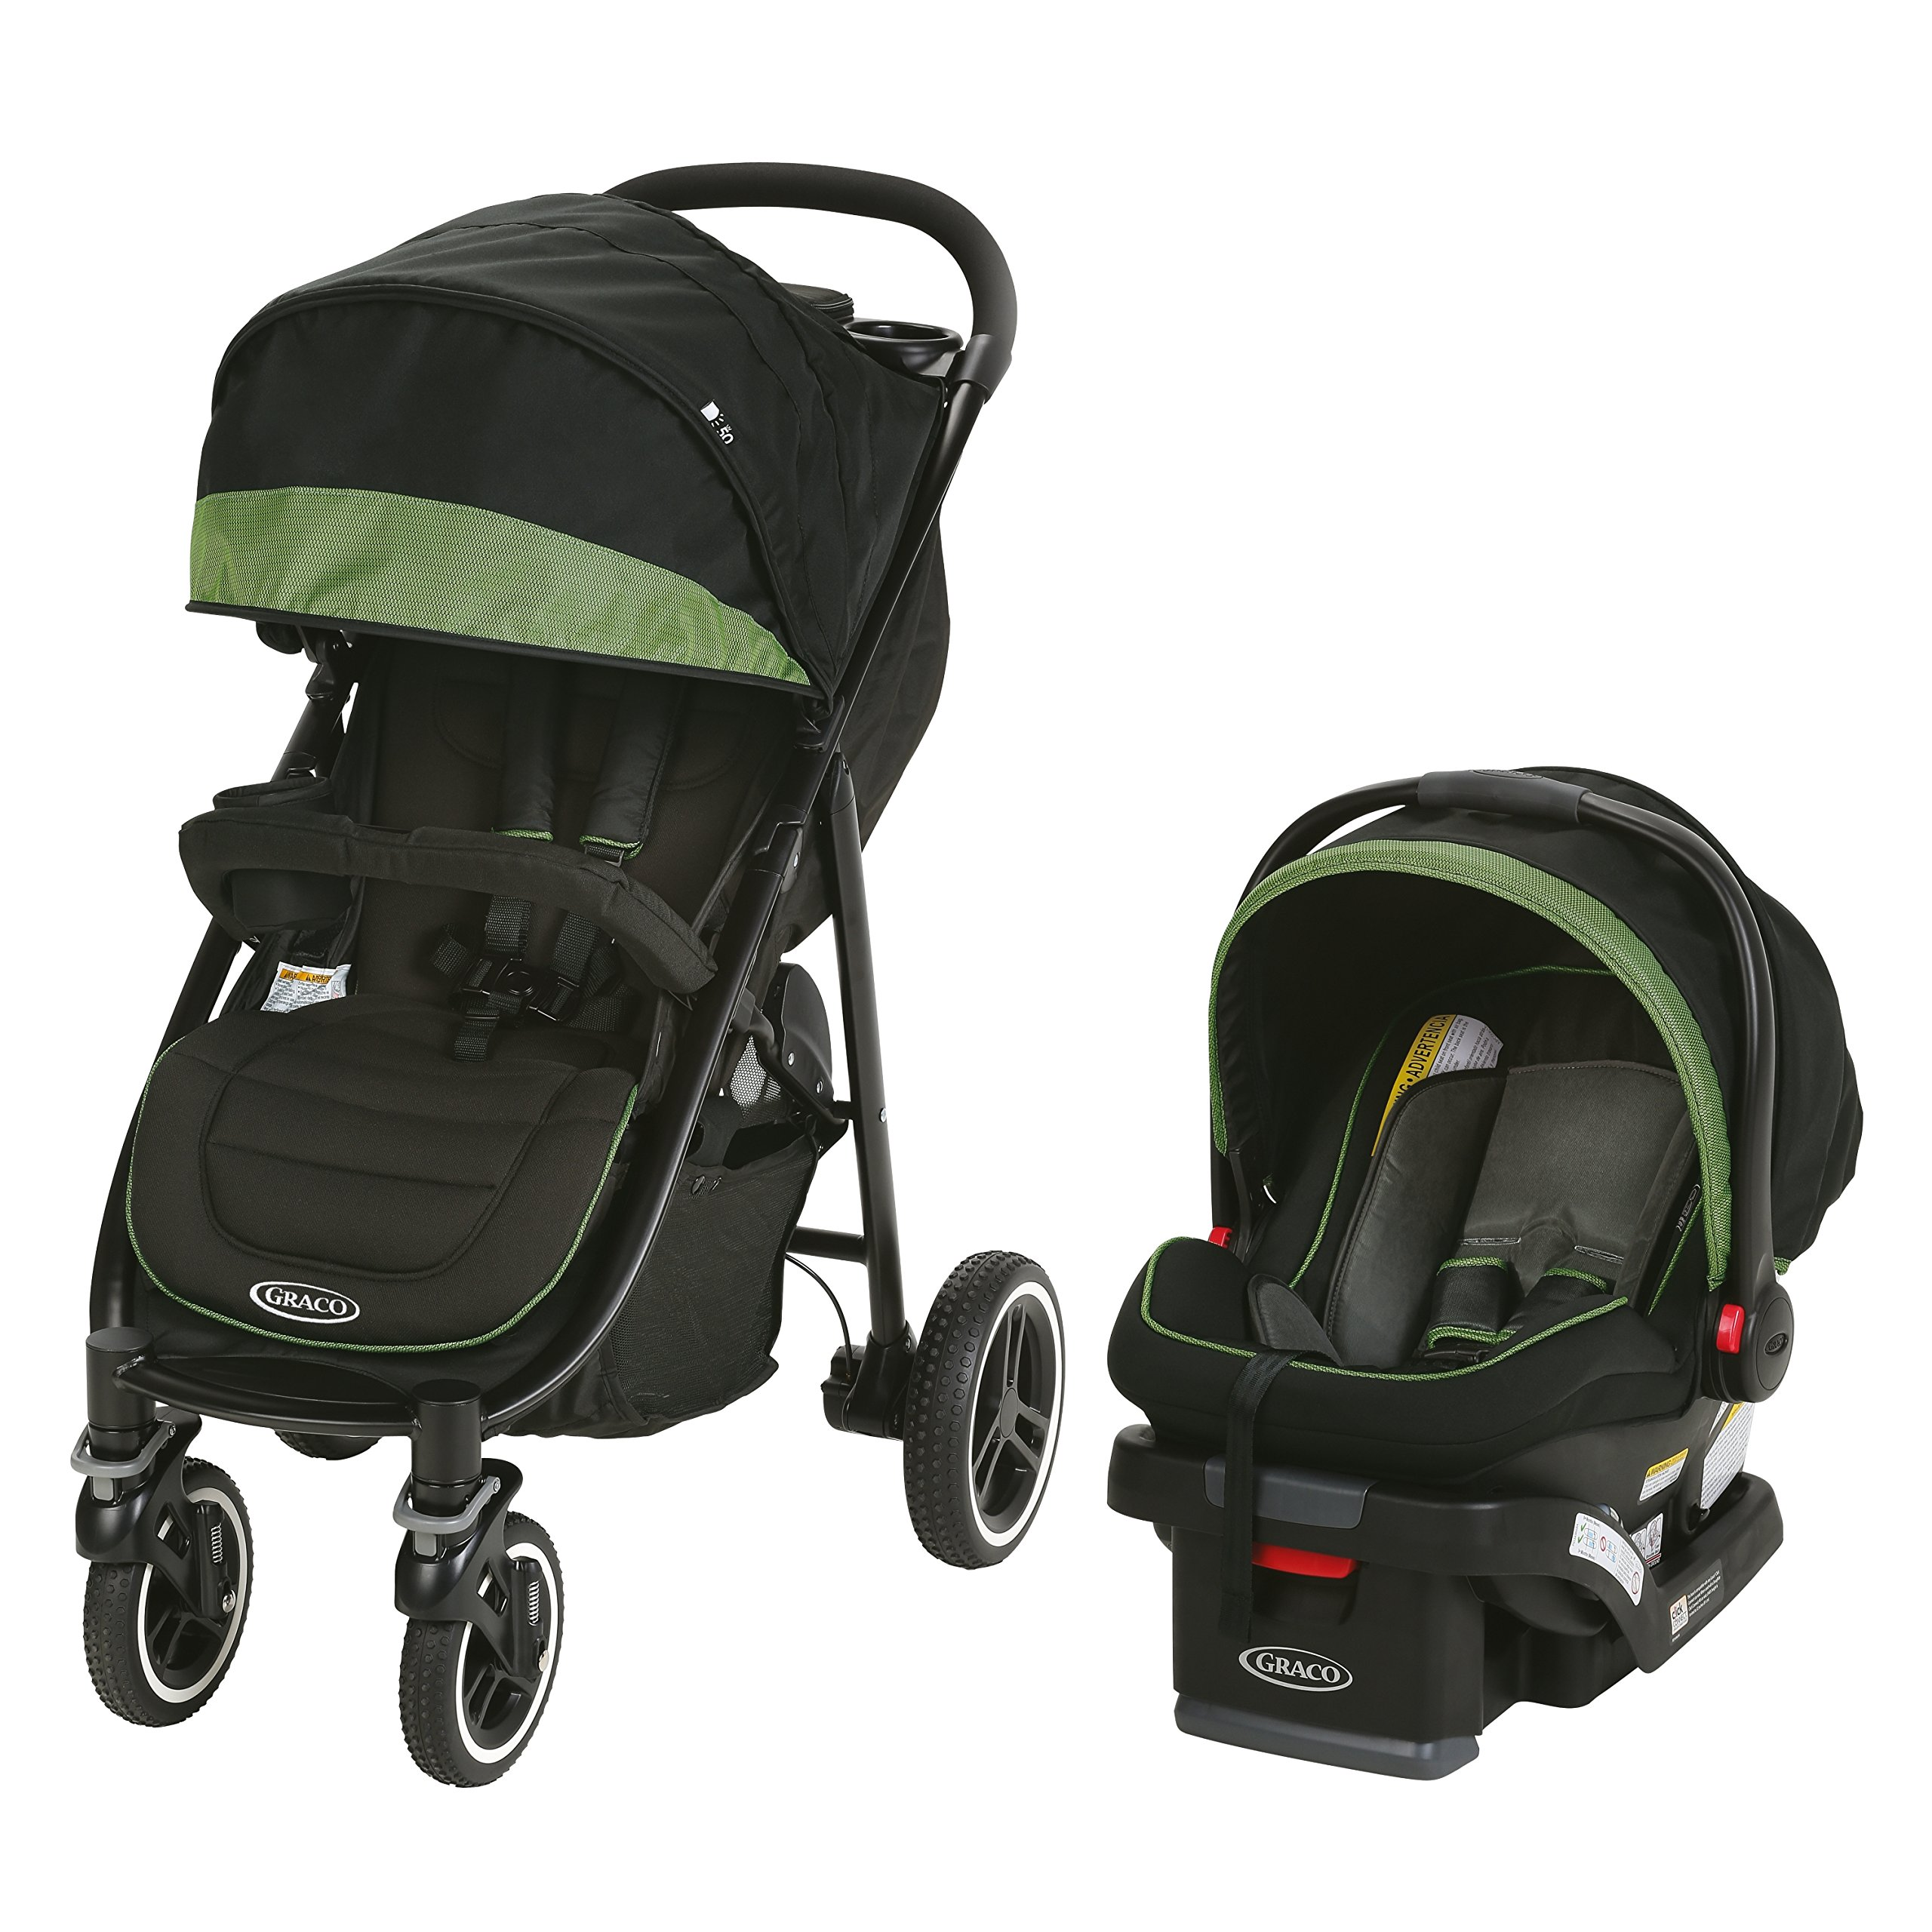 Graco Aire4 XT Travel System, Emory